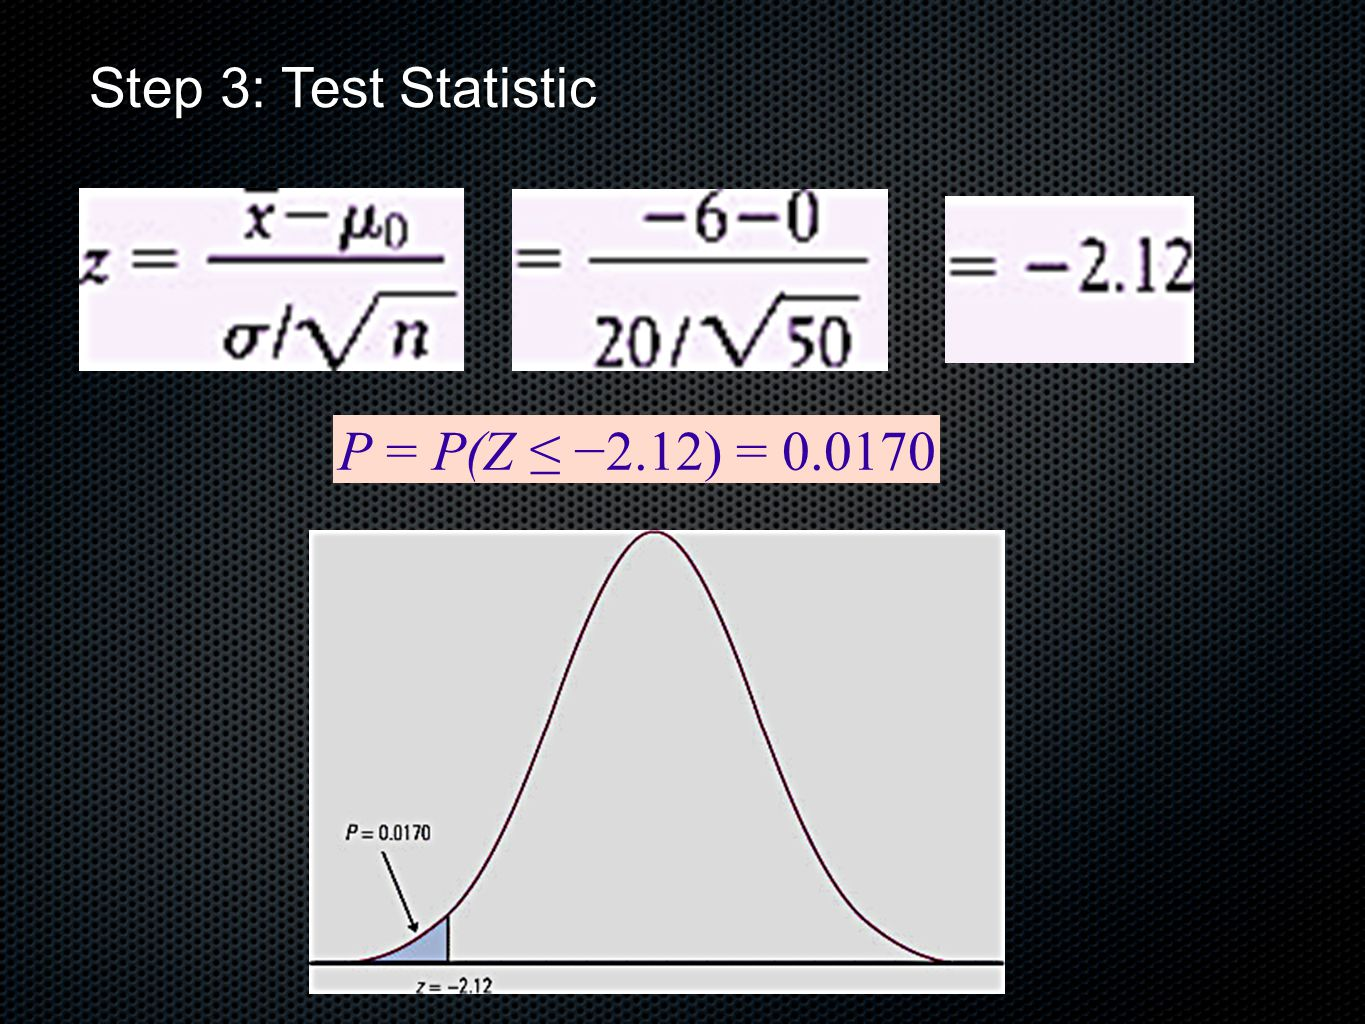 Step 3: Test Statistic P = P(Z ≤ −2.12) = 0.0170